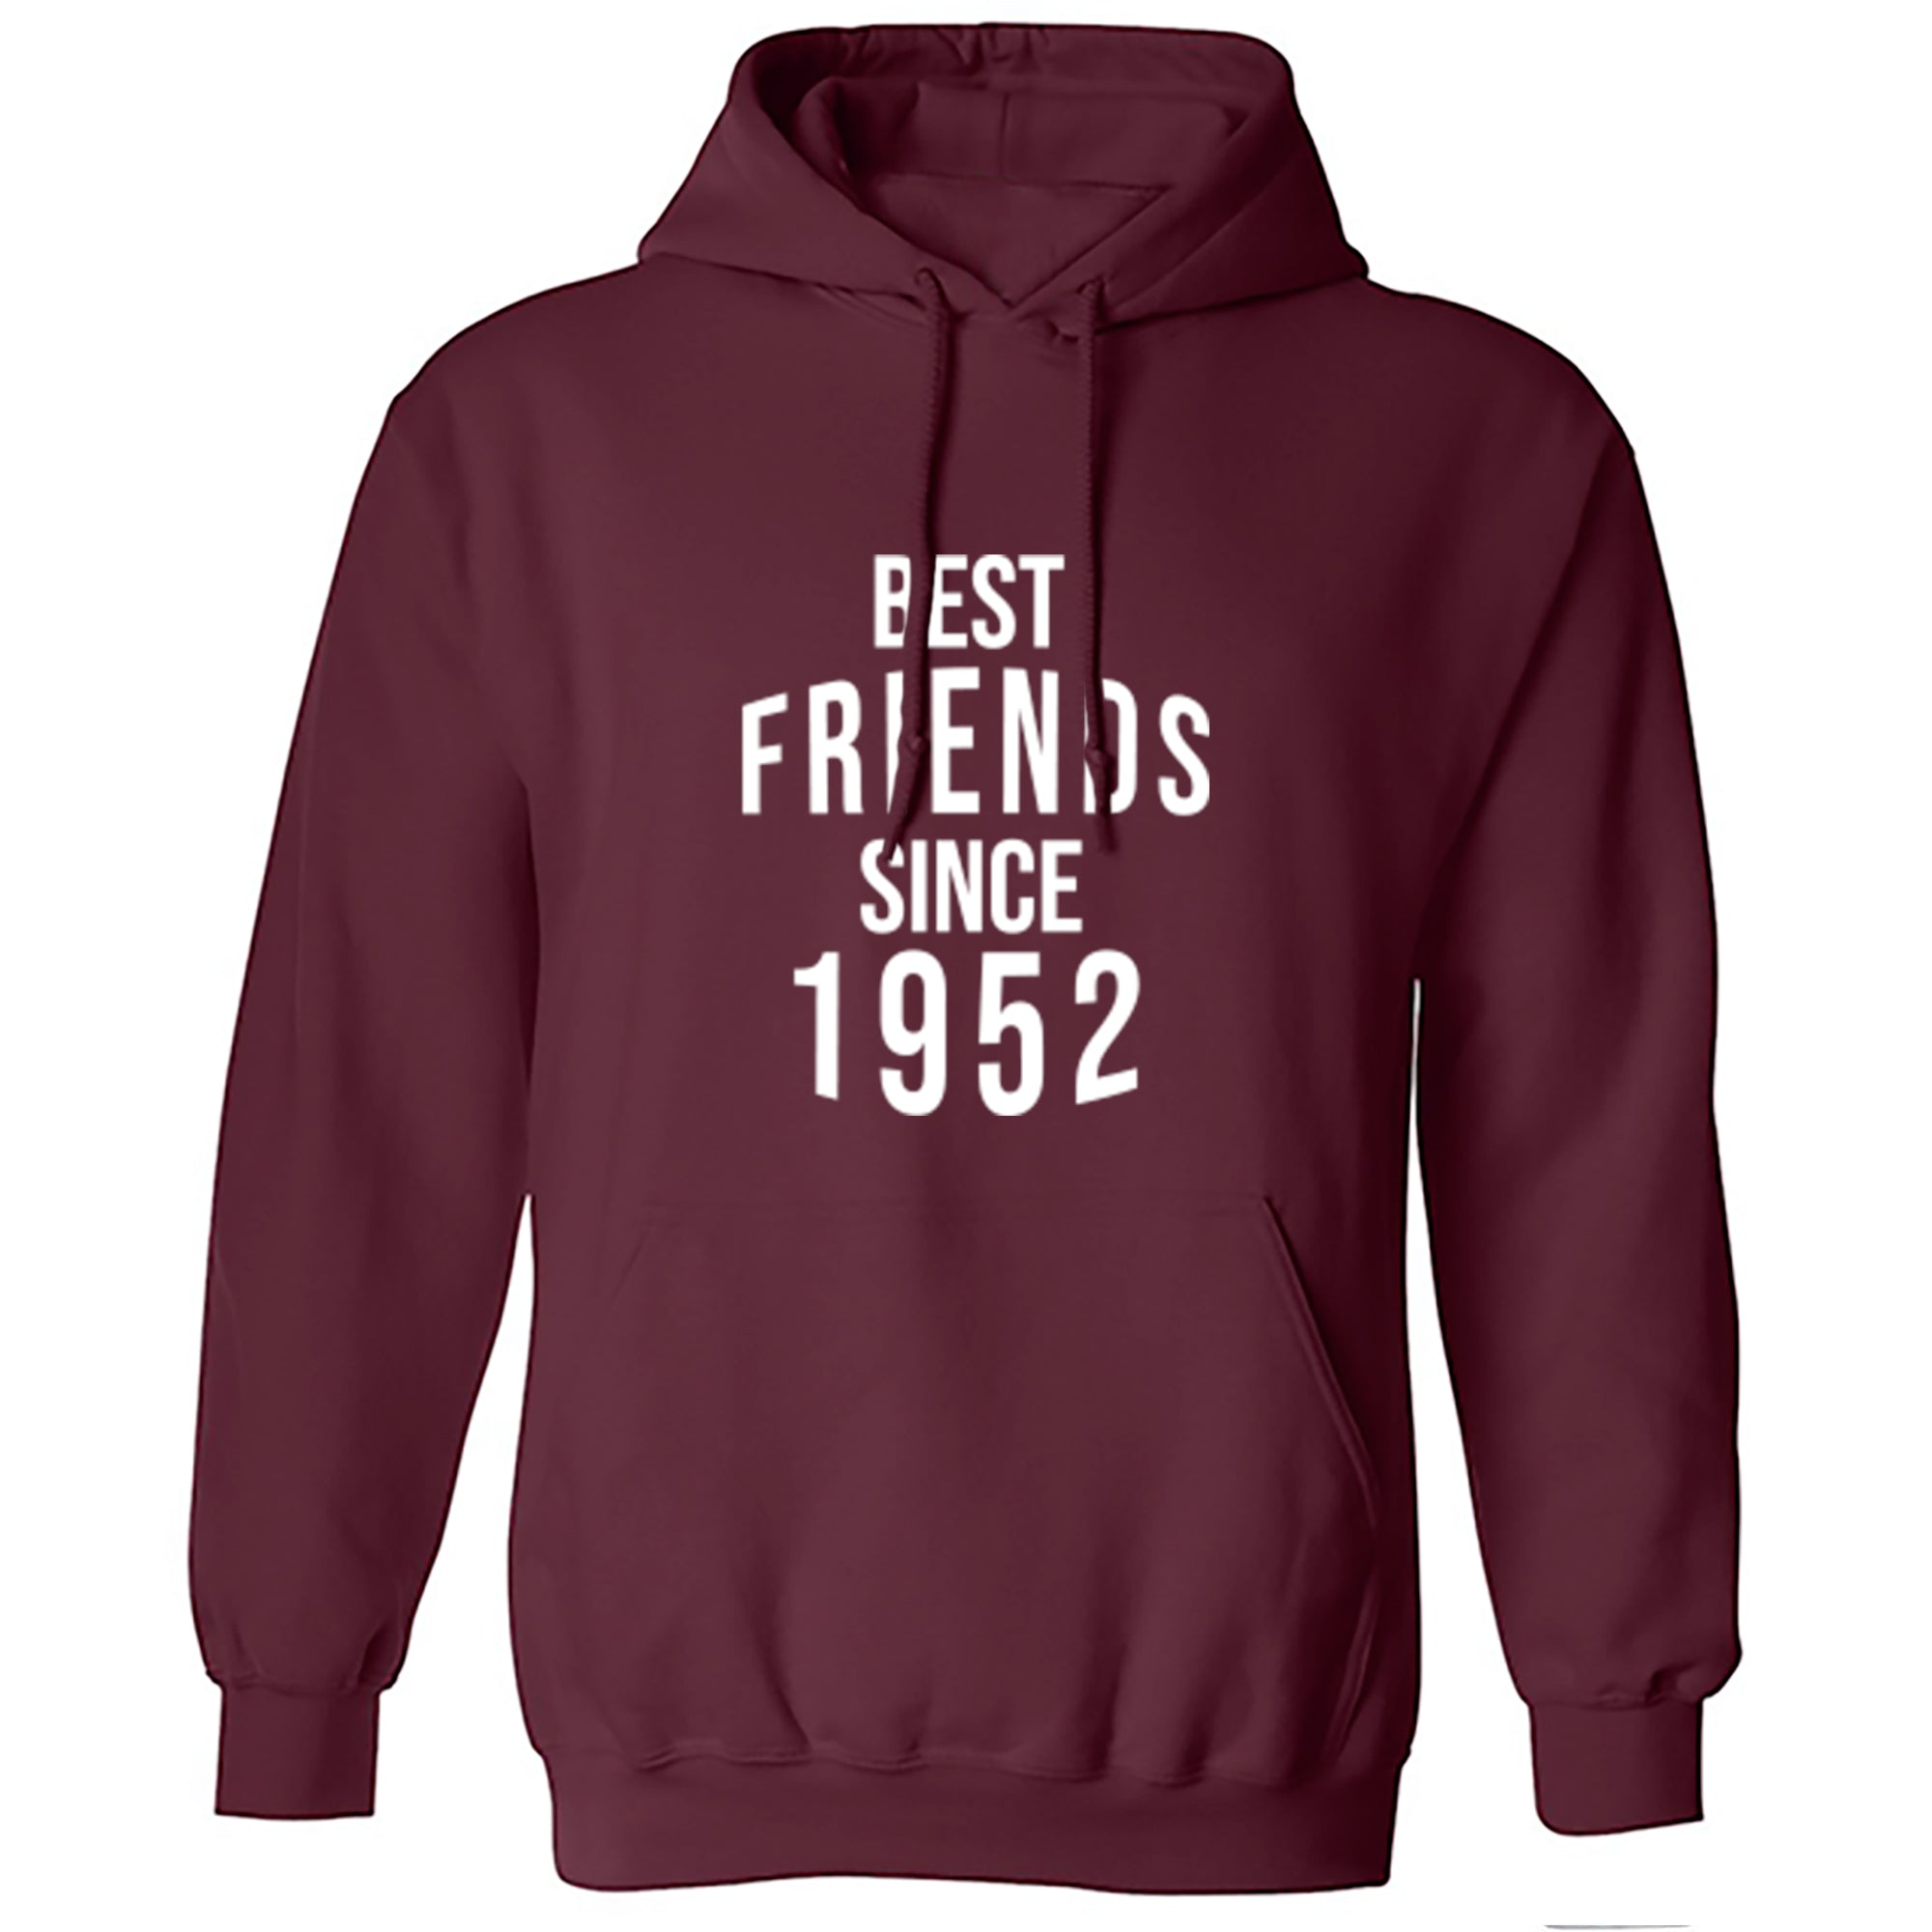 Best Friends Since 1952 Unisex Hoodie S0531 - Illustrated Identity Ltd.